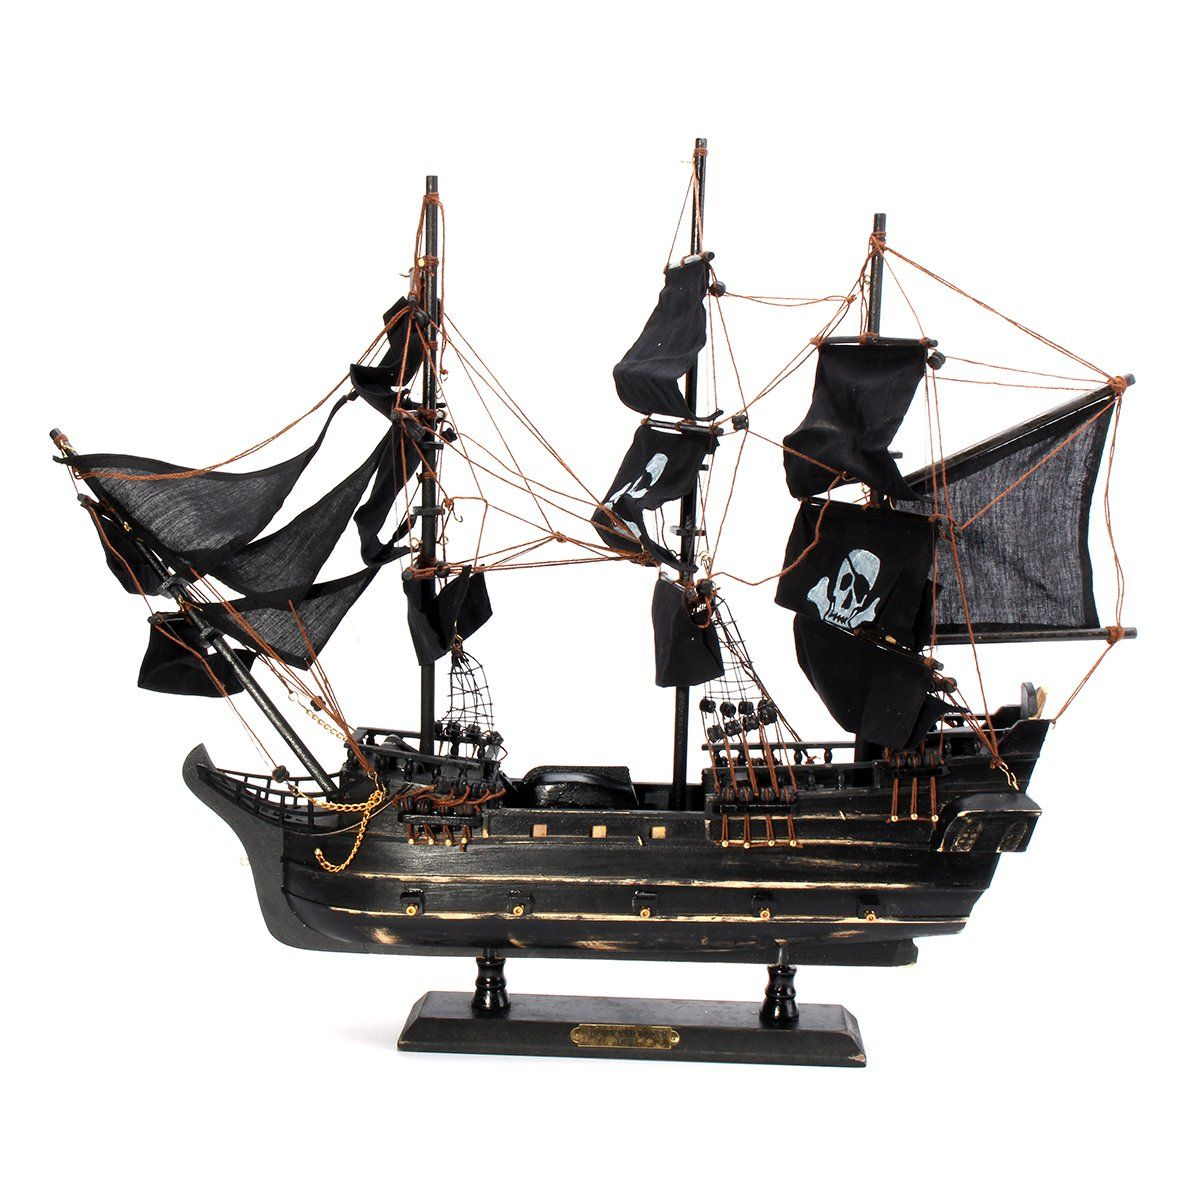 Black Model Pirate Ship Vintage Wooden Sailboat Home Decorations Boat Gift Toy